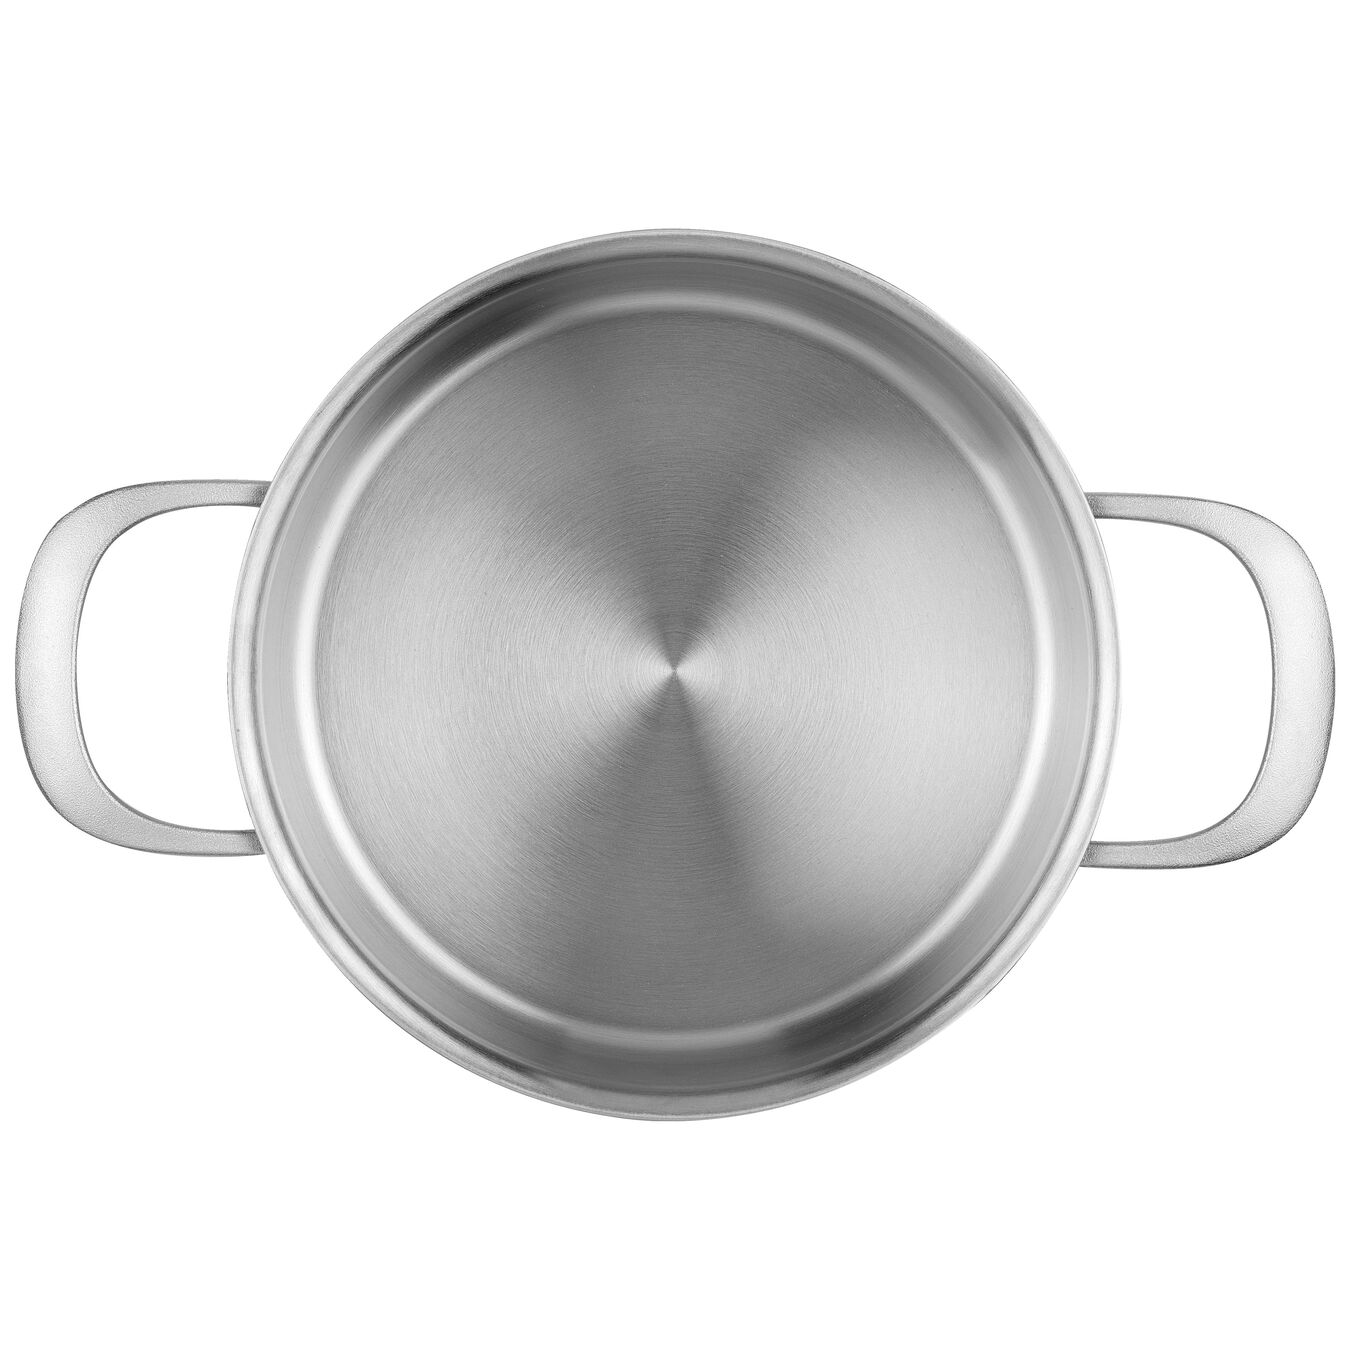 5,25 l 18/10 Stainless Steel Faitout,,large 2